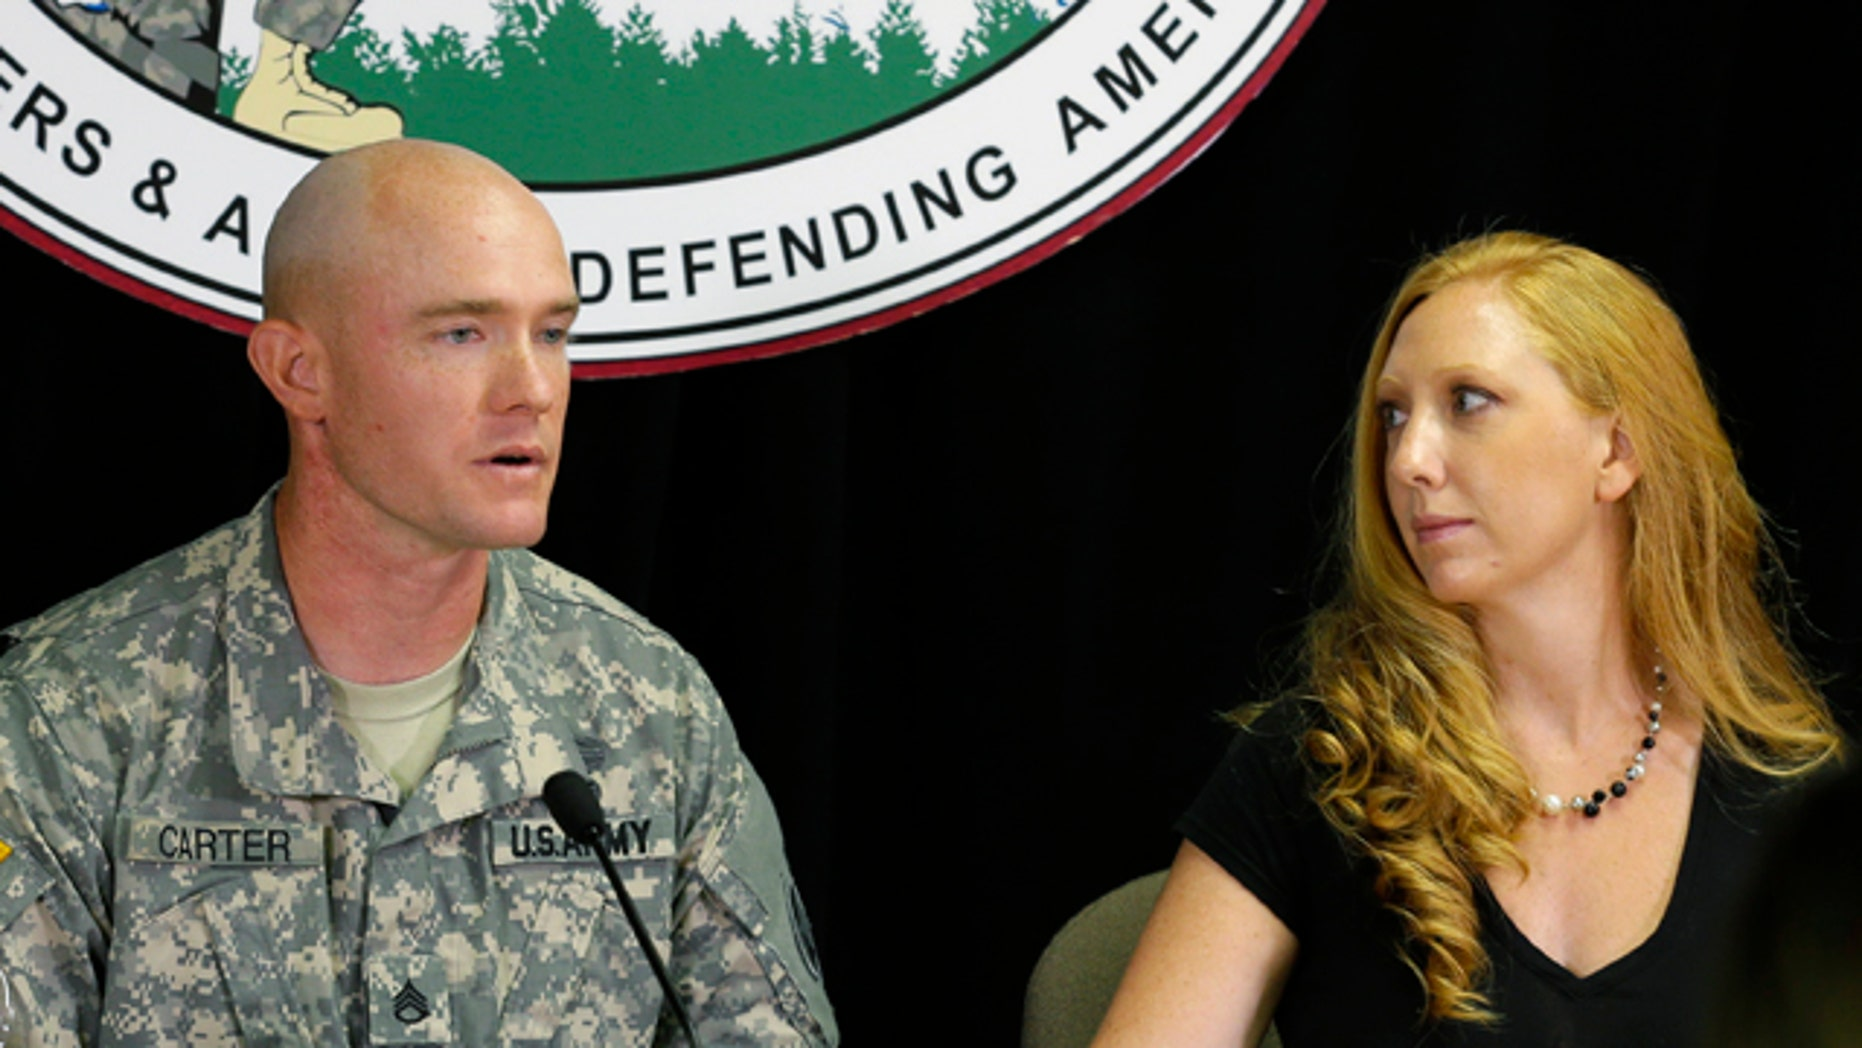 July 29, 2013: U.S. Army Staff Sgt. Ty Carter and his wife, Shannon Carter, talk to reporters at Joint Base Lewis-McChord in Washington state.